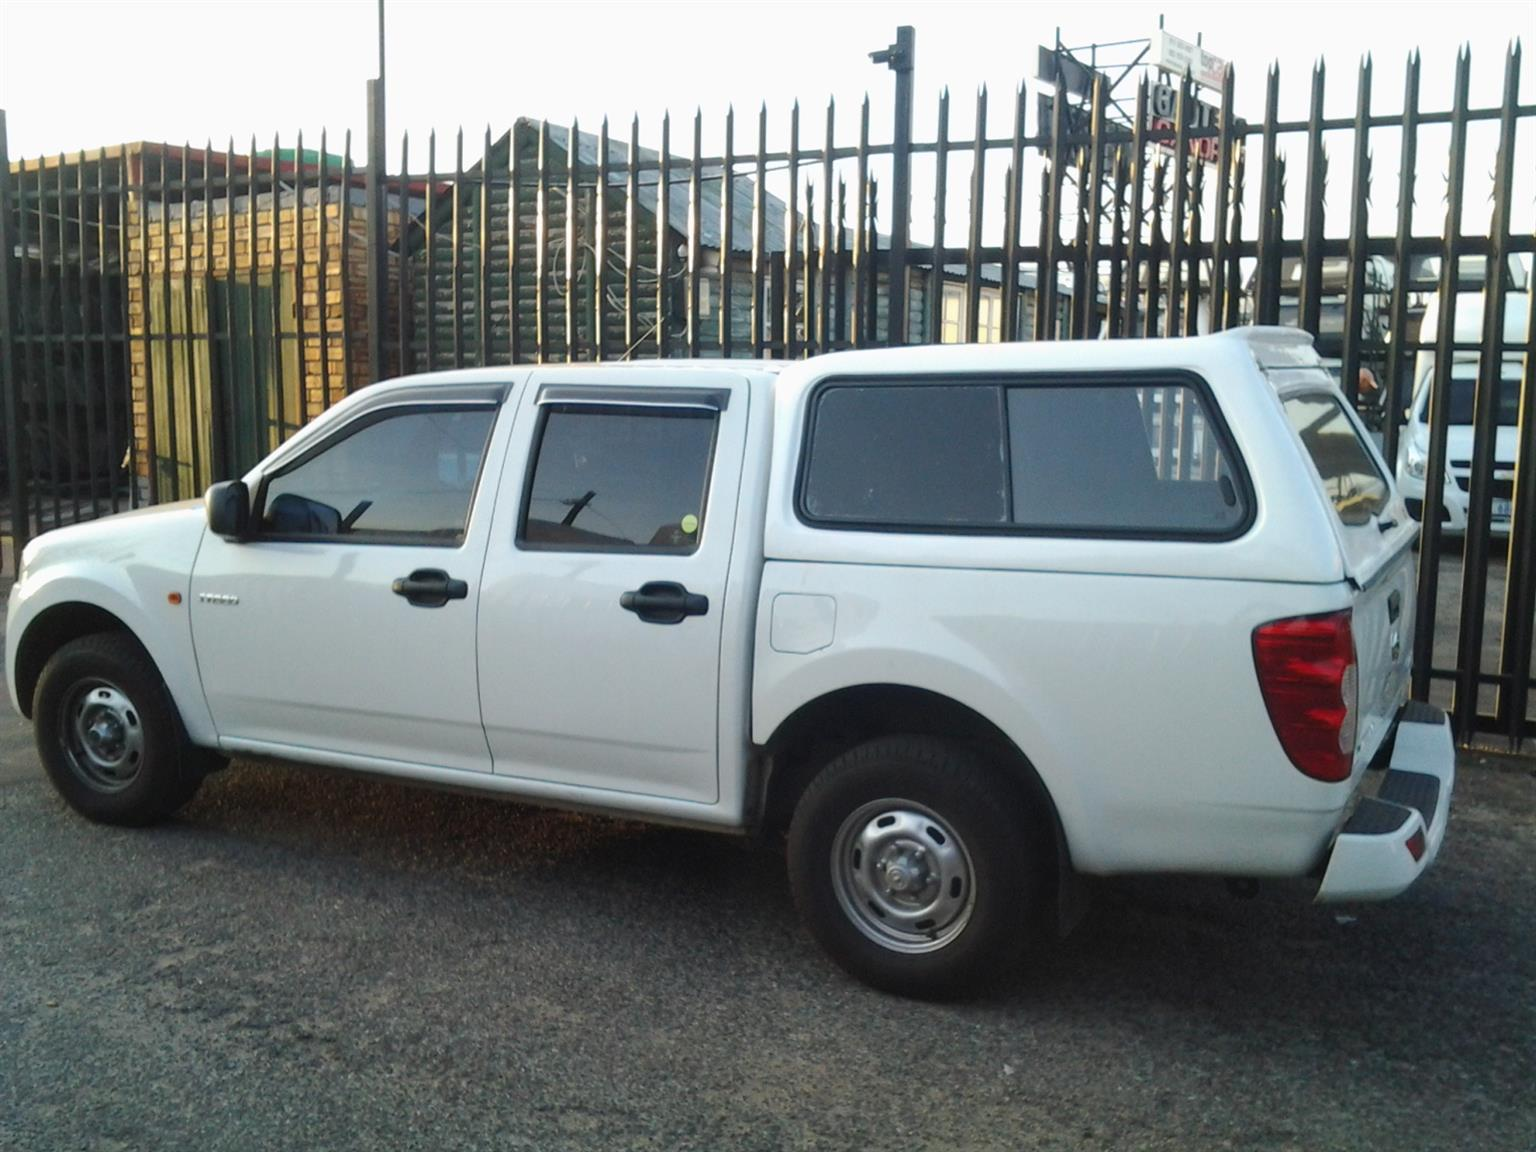 BARGAIN NOT TO BE MISS BRAND NEW GC ISUZU 2005-2013 DC CANOPY FOR SALE!!!!!!!!